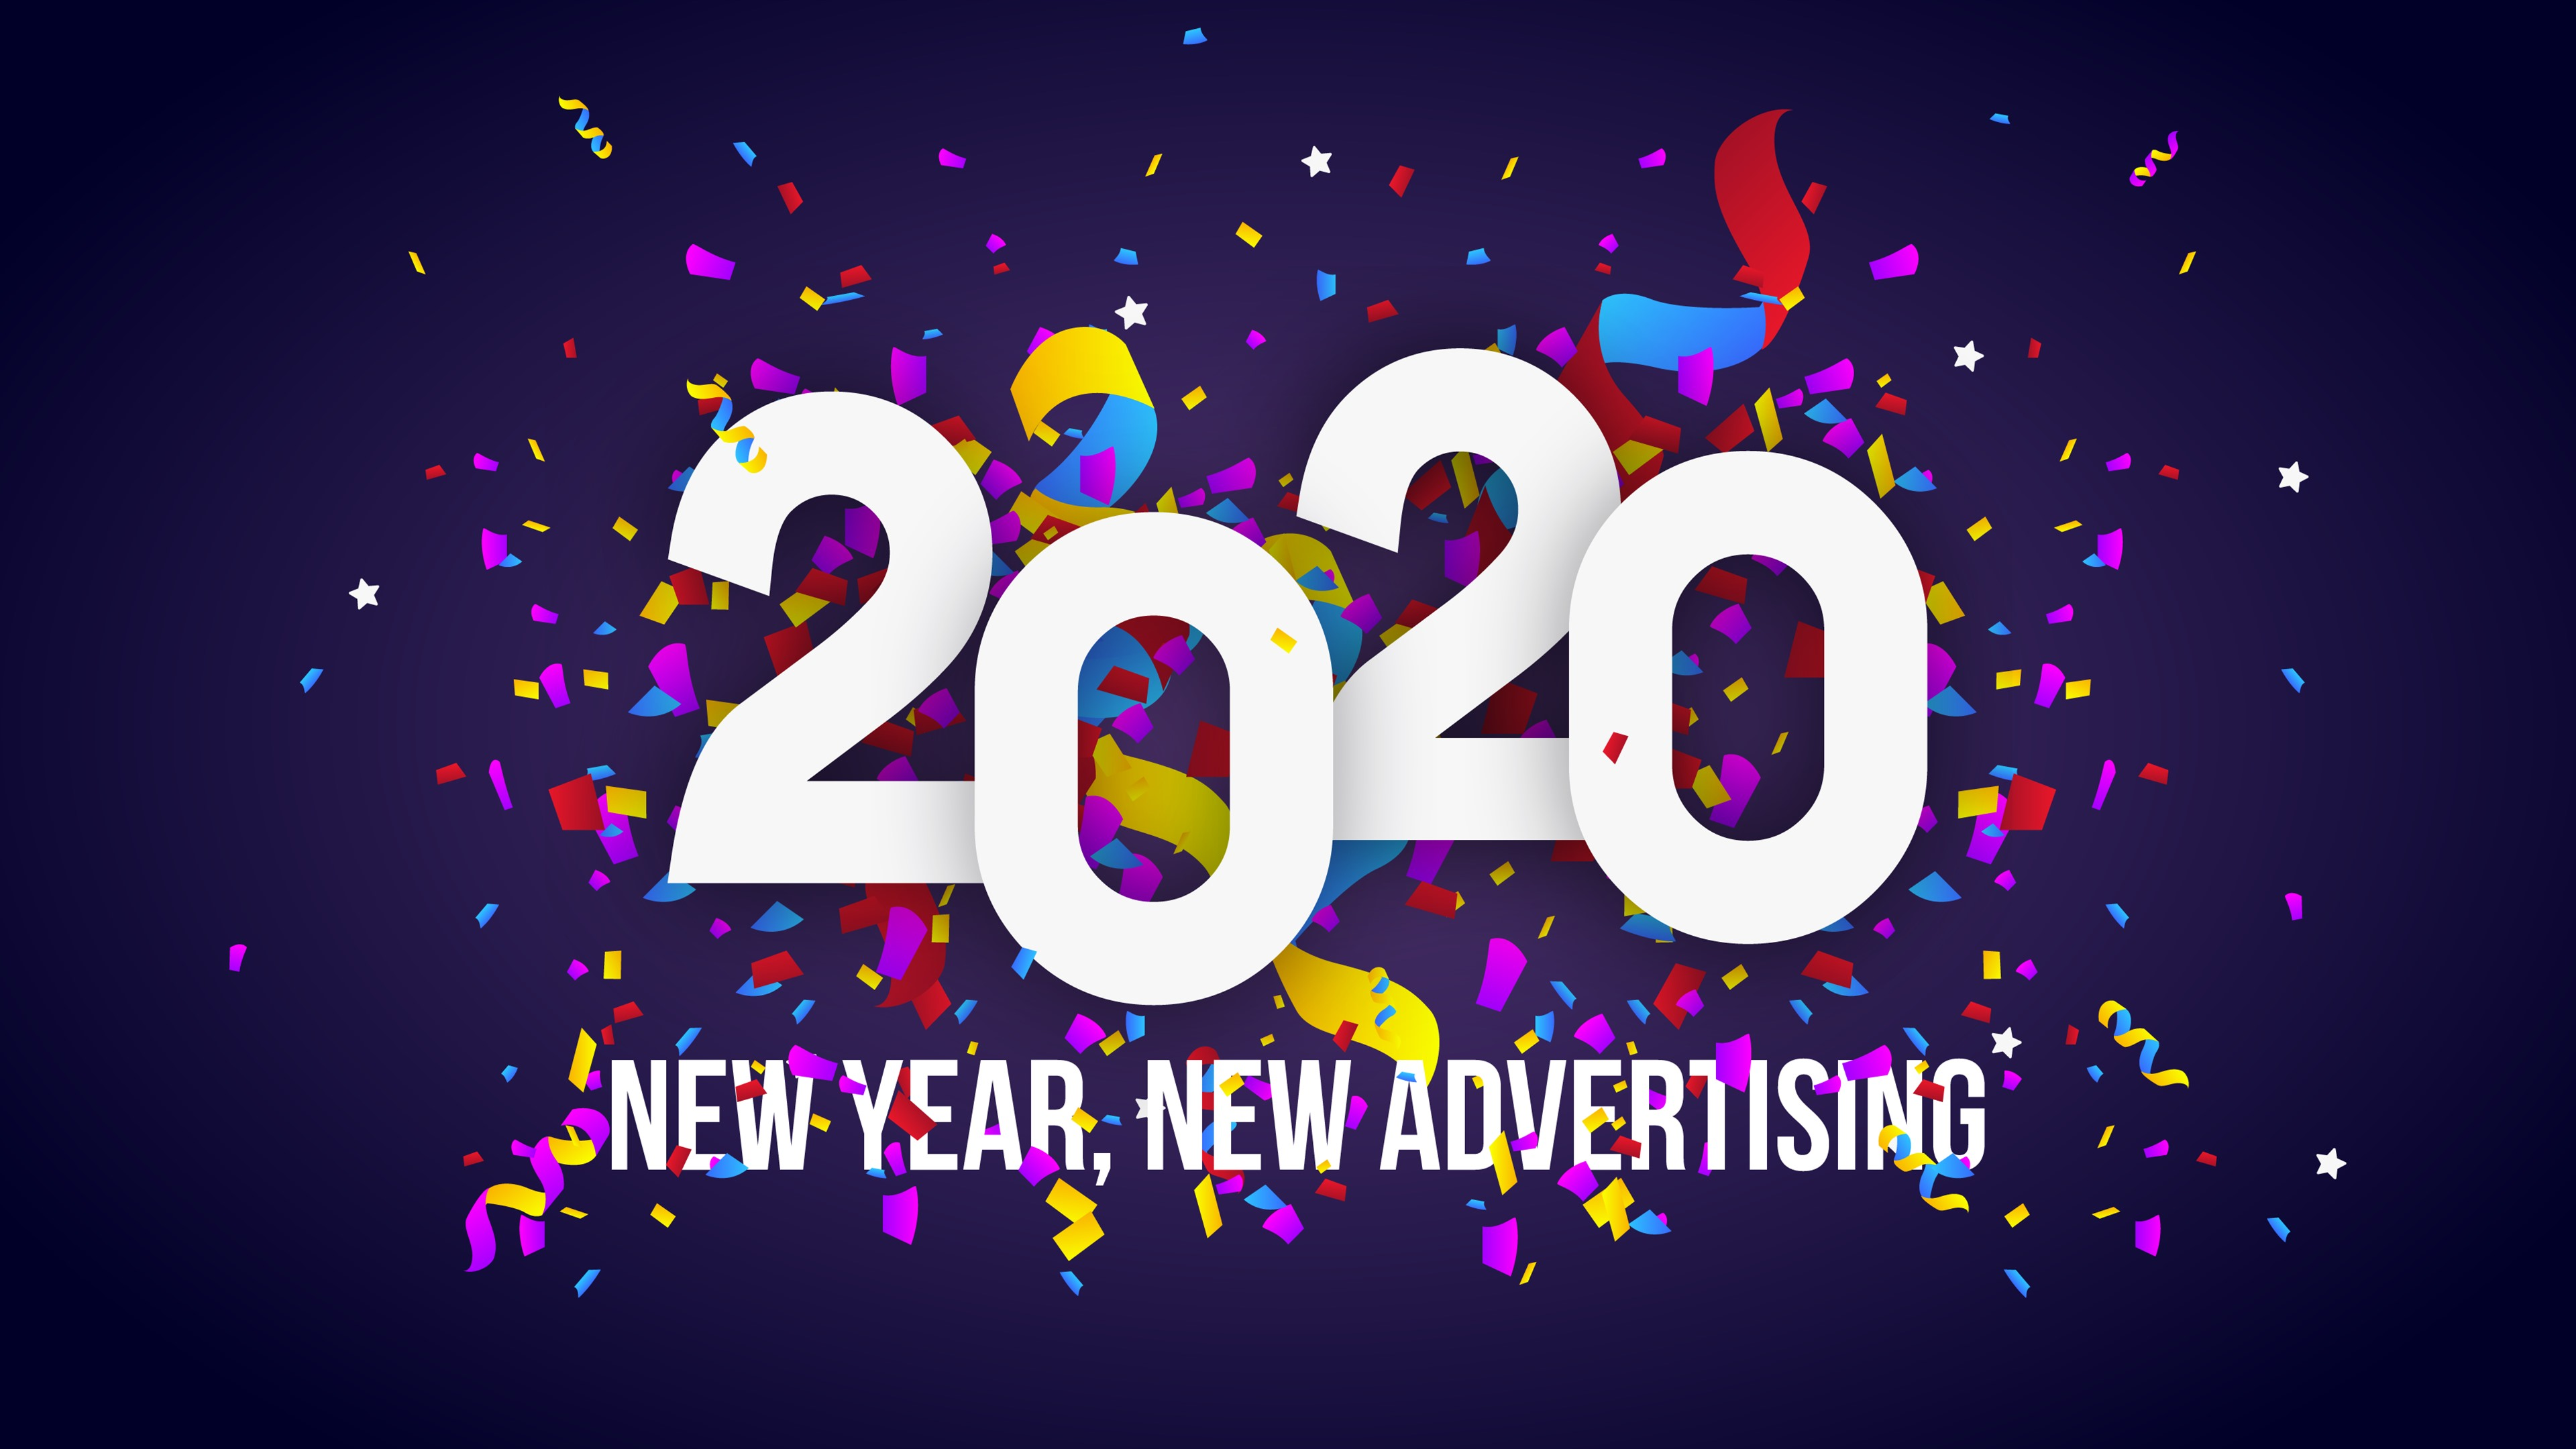 Wallpaper Happy New Year 2020 Congratulation Colorful 3840x2160 Uhd 4k Picture Image